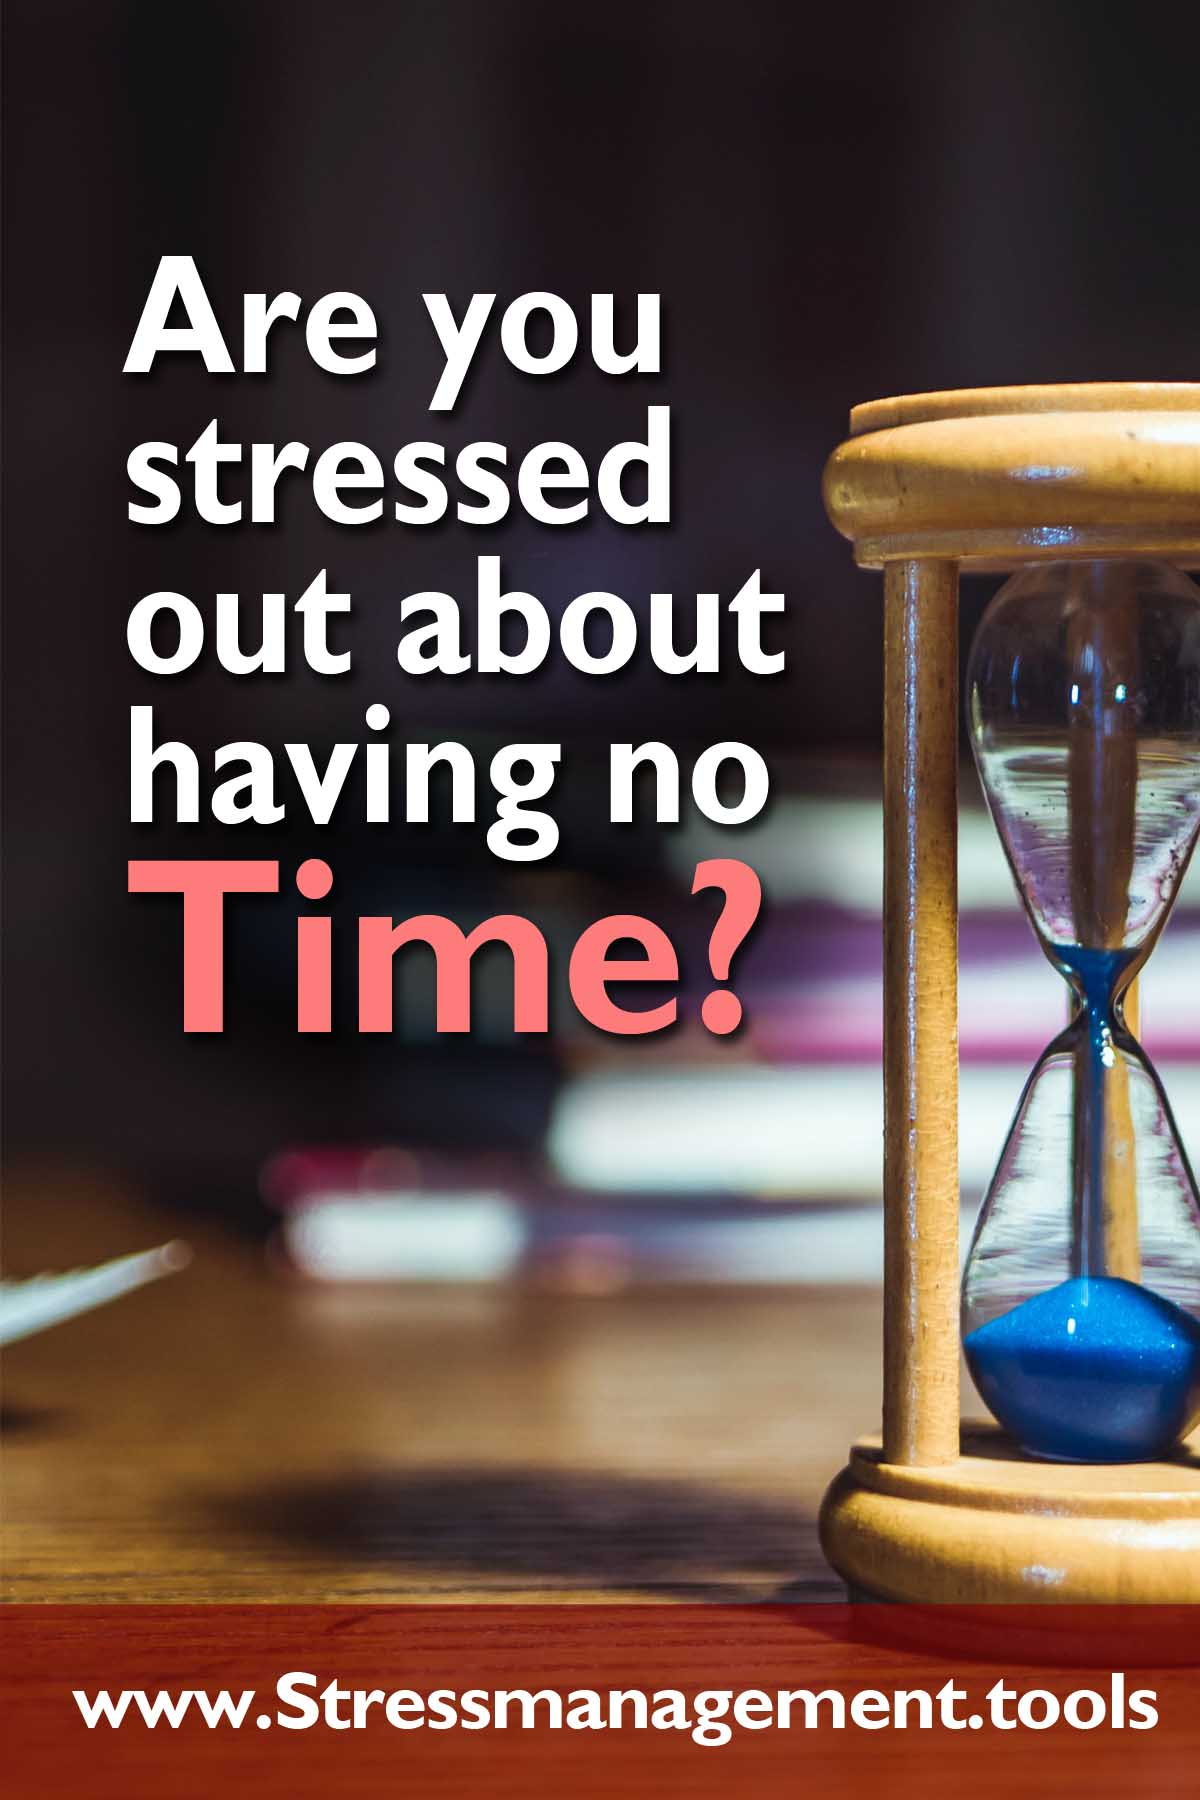 Are You Stressed Out about Having no Time?